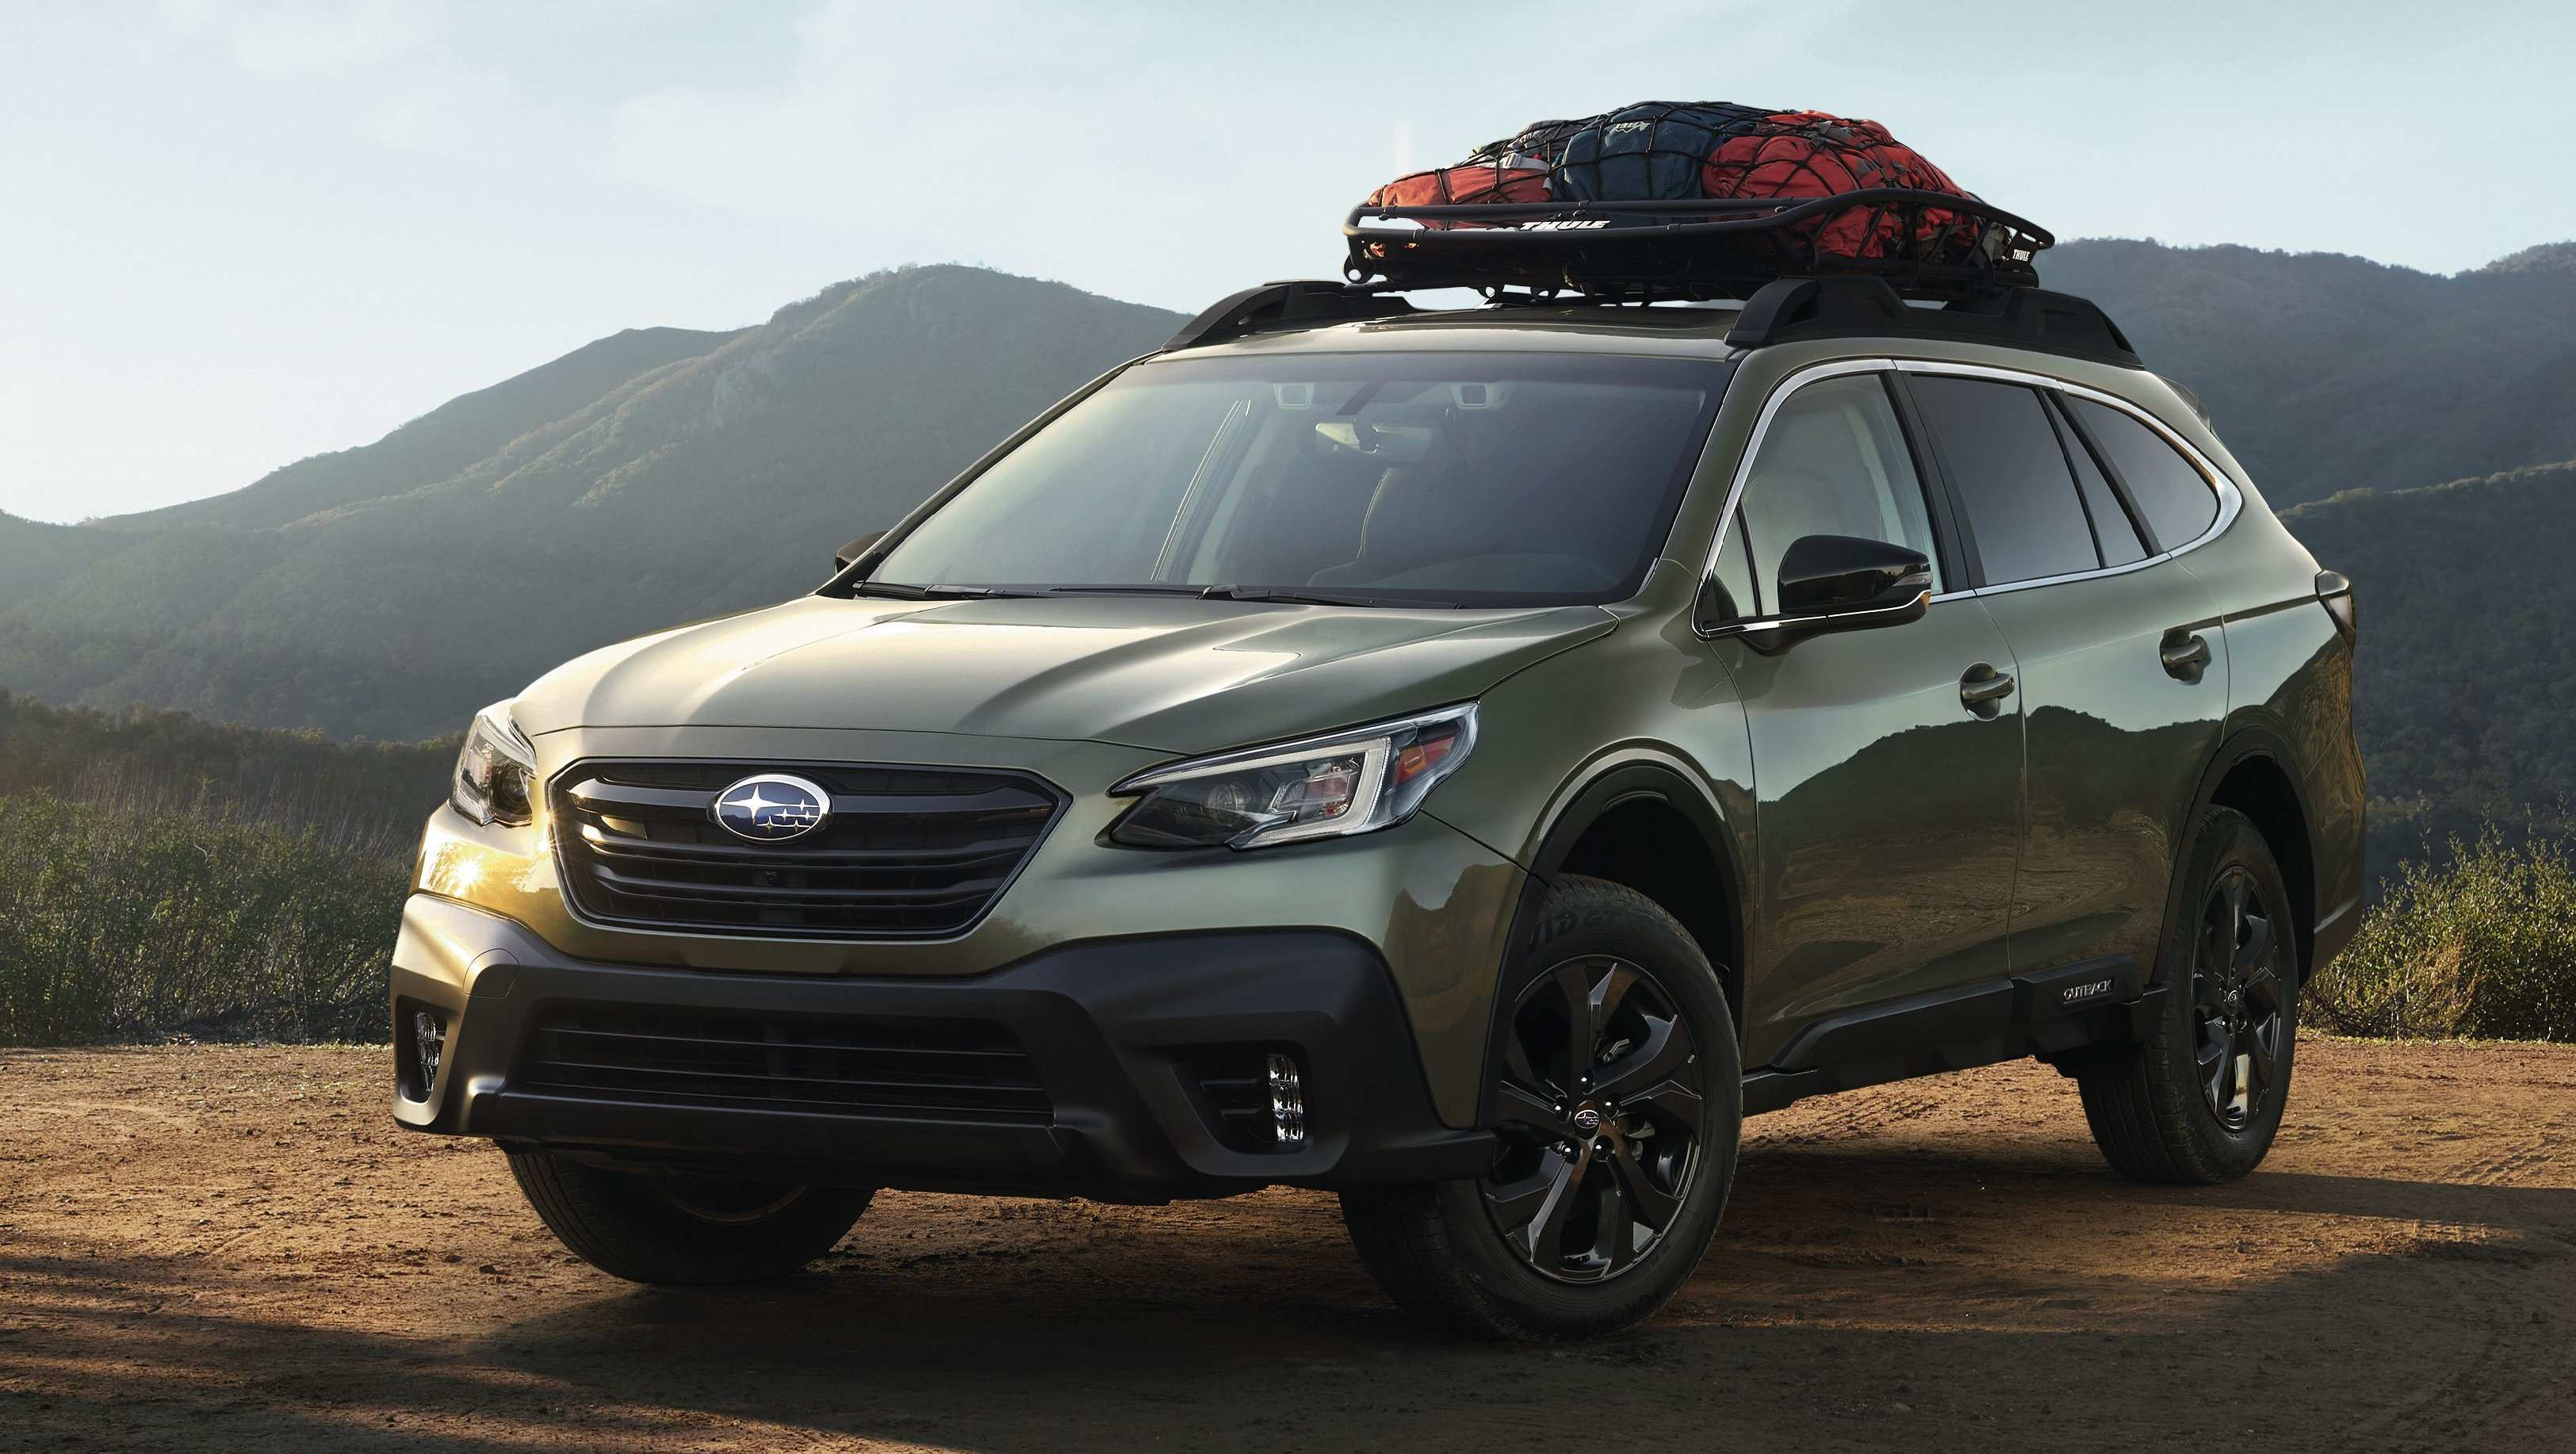 15 Gallery of Subaru Outback 2020 Performance with Subaru Outback 2020